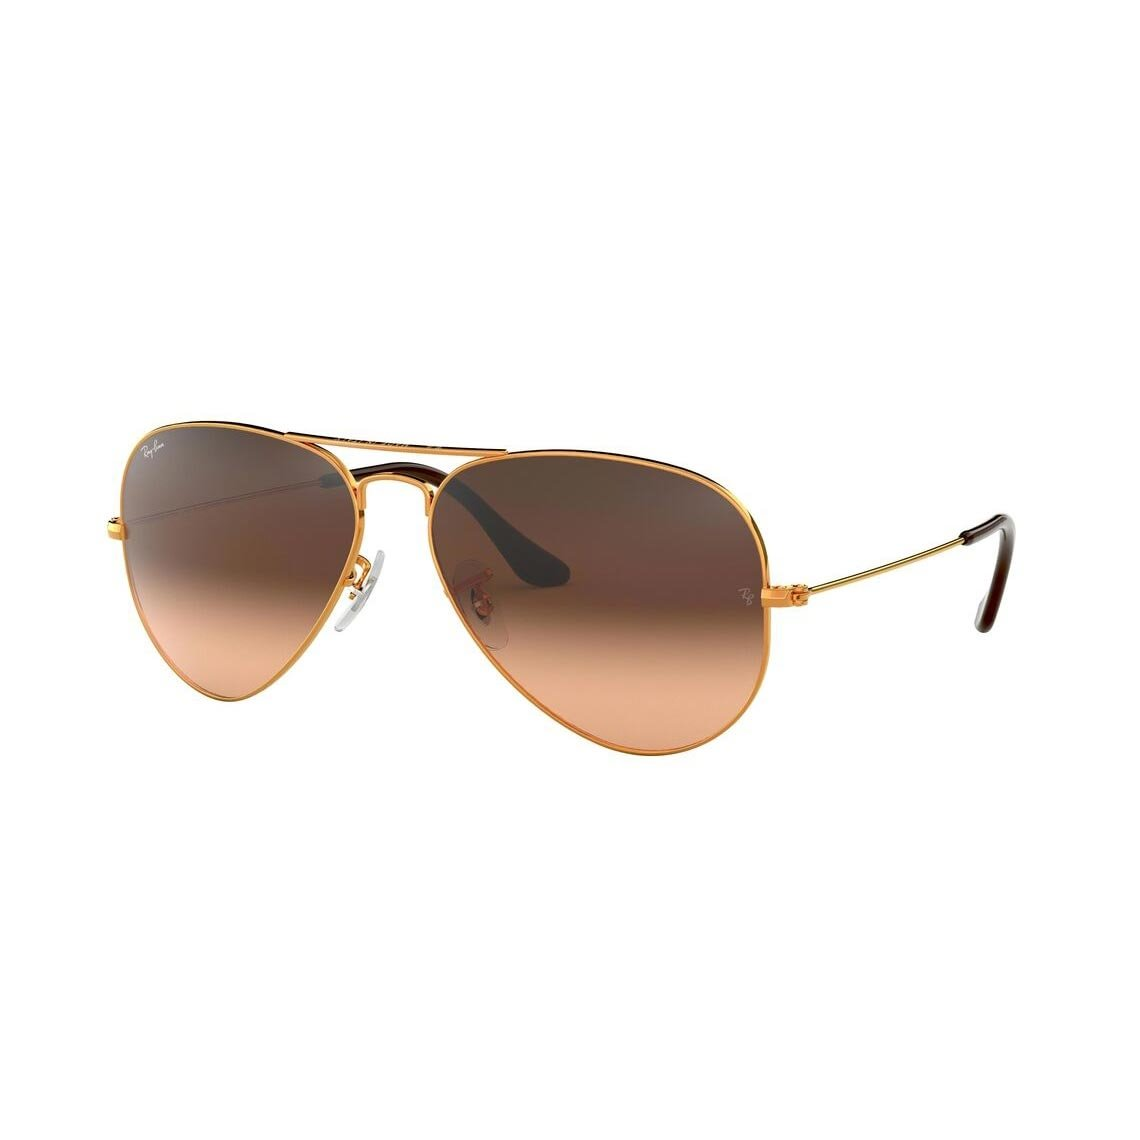 Ray-Ban Aviator RB3025 9001A5 58